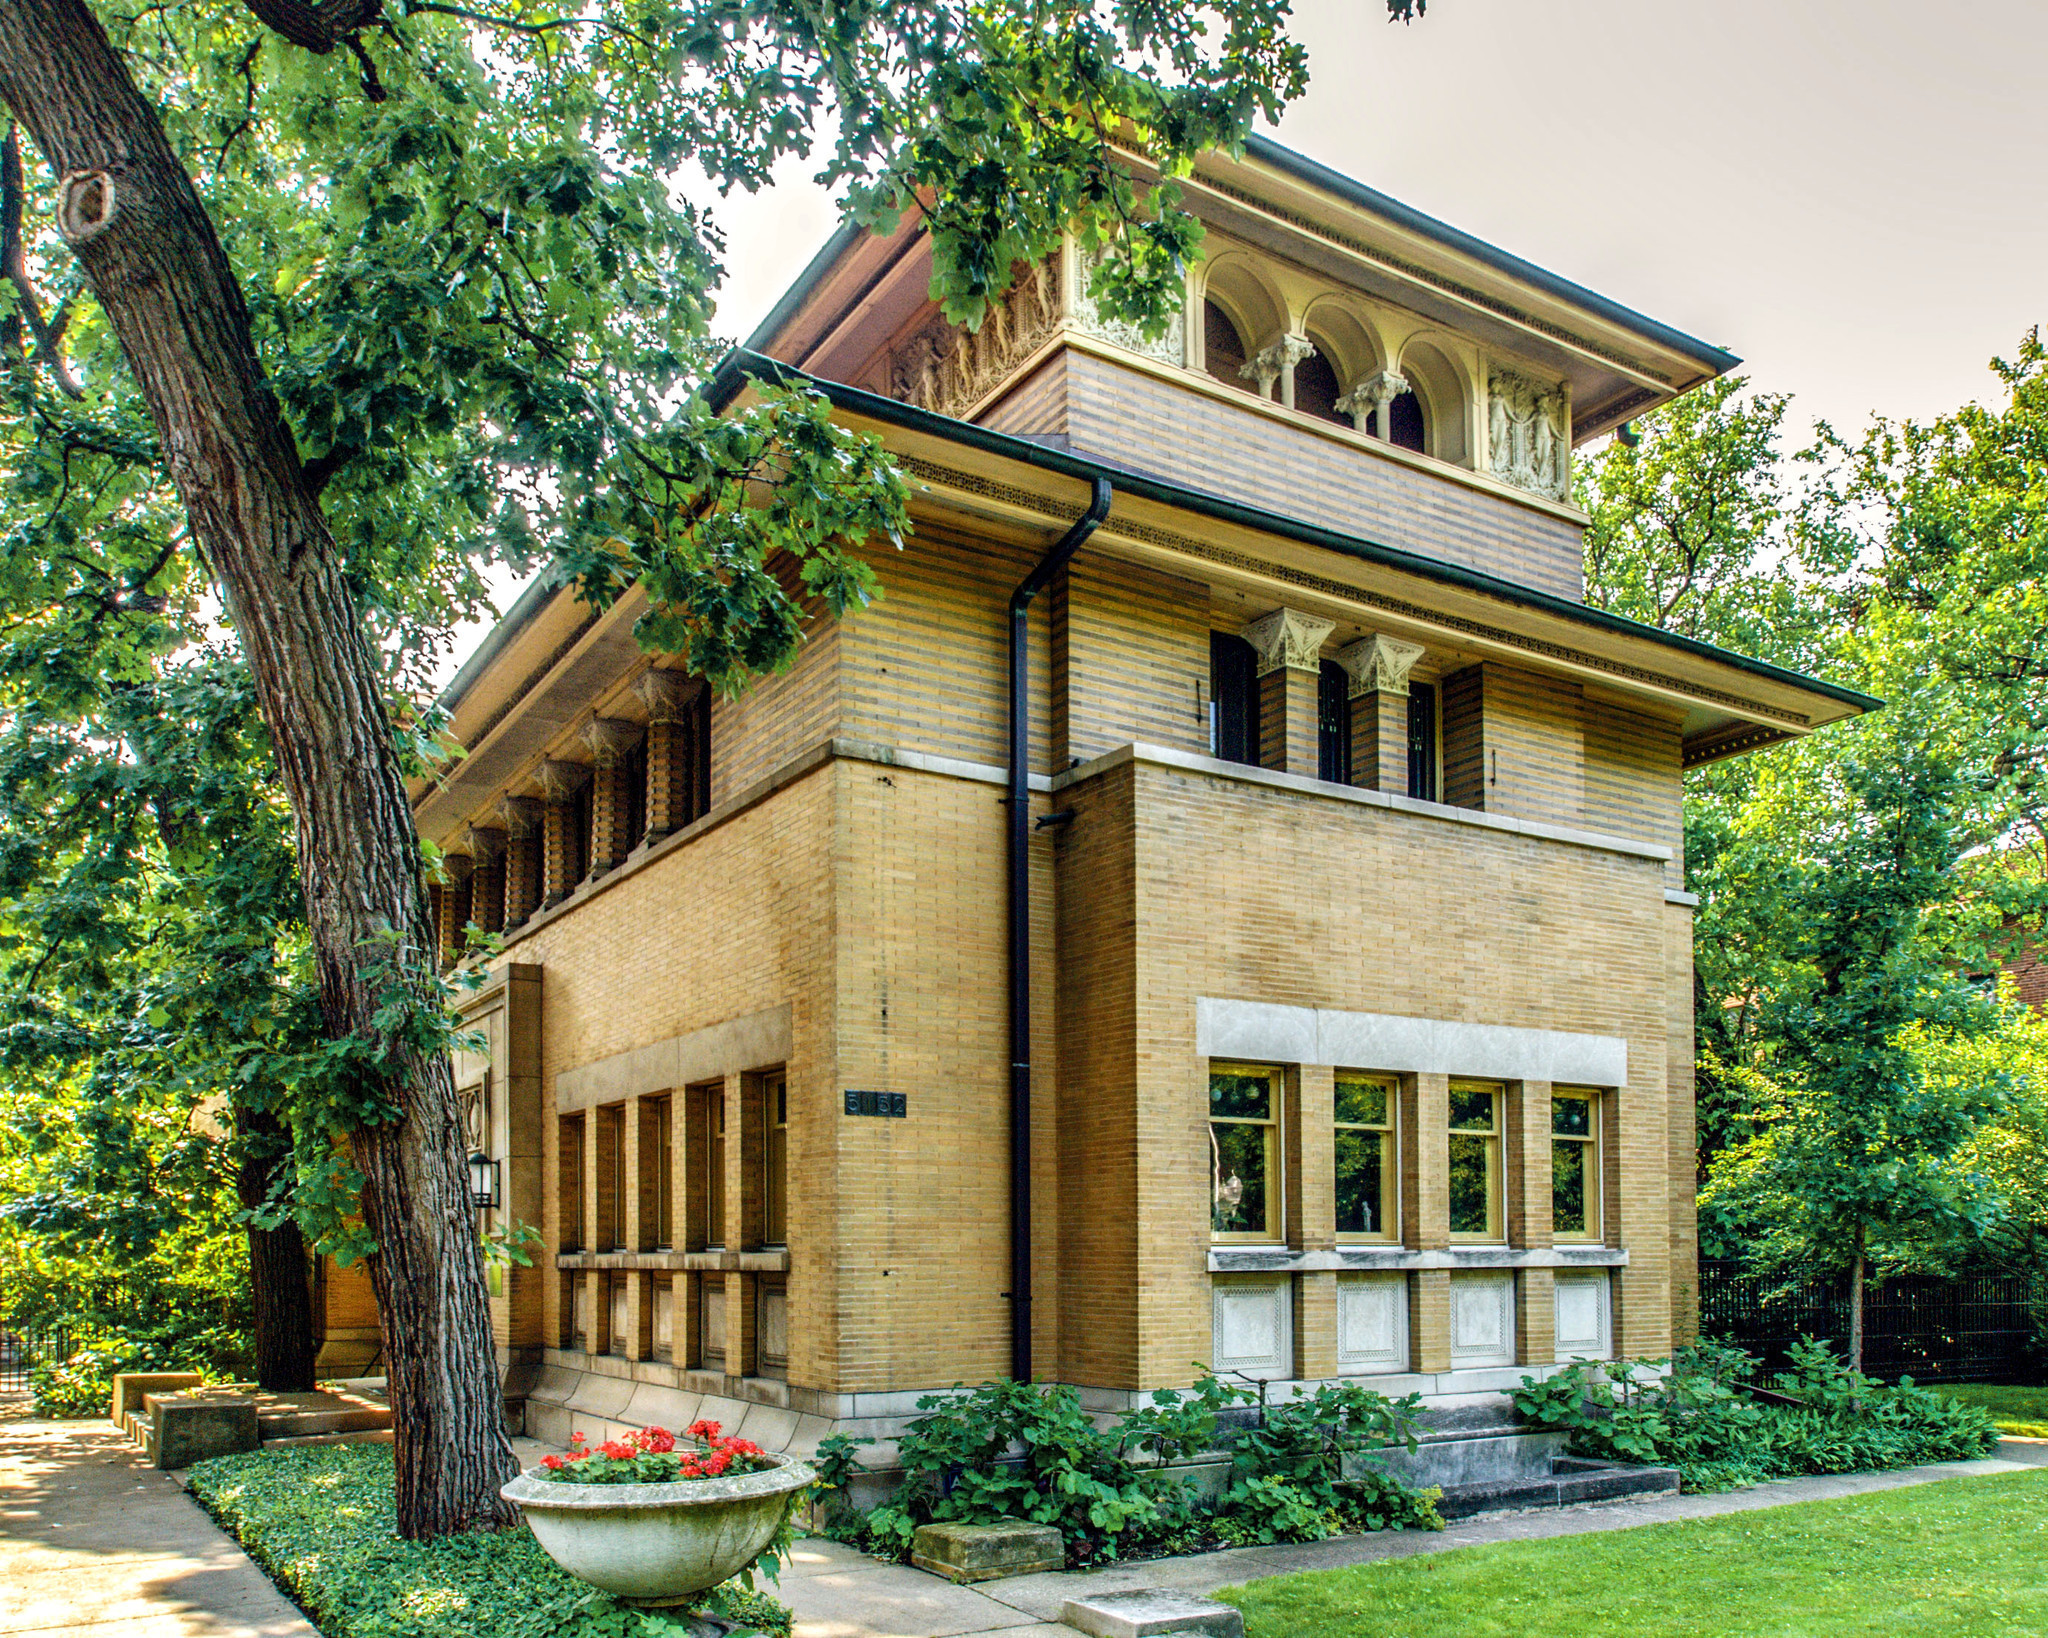 Frank lloyd wright 39 s heller house for sale again in hyde for Usonian house plans for sale